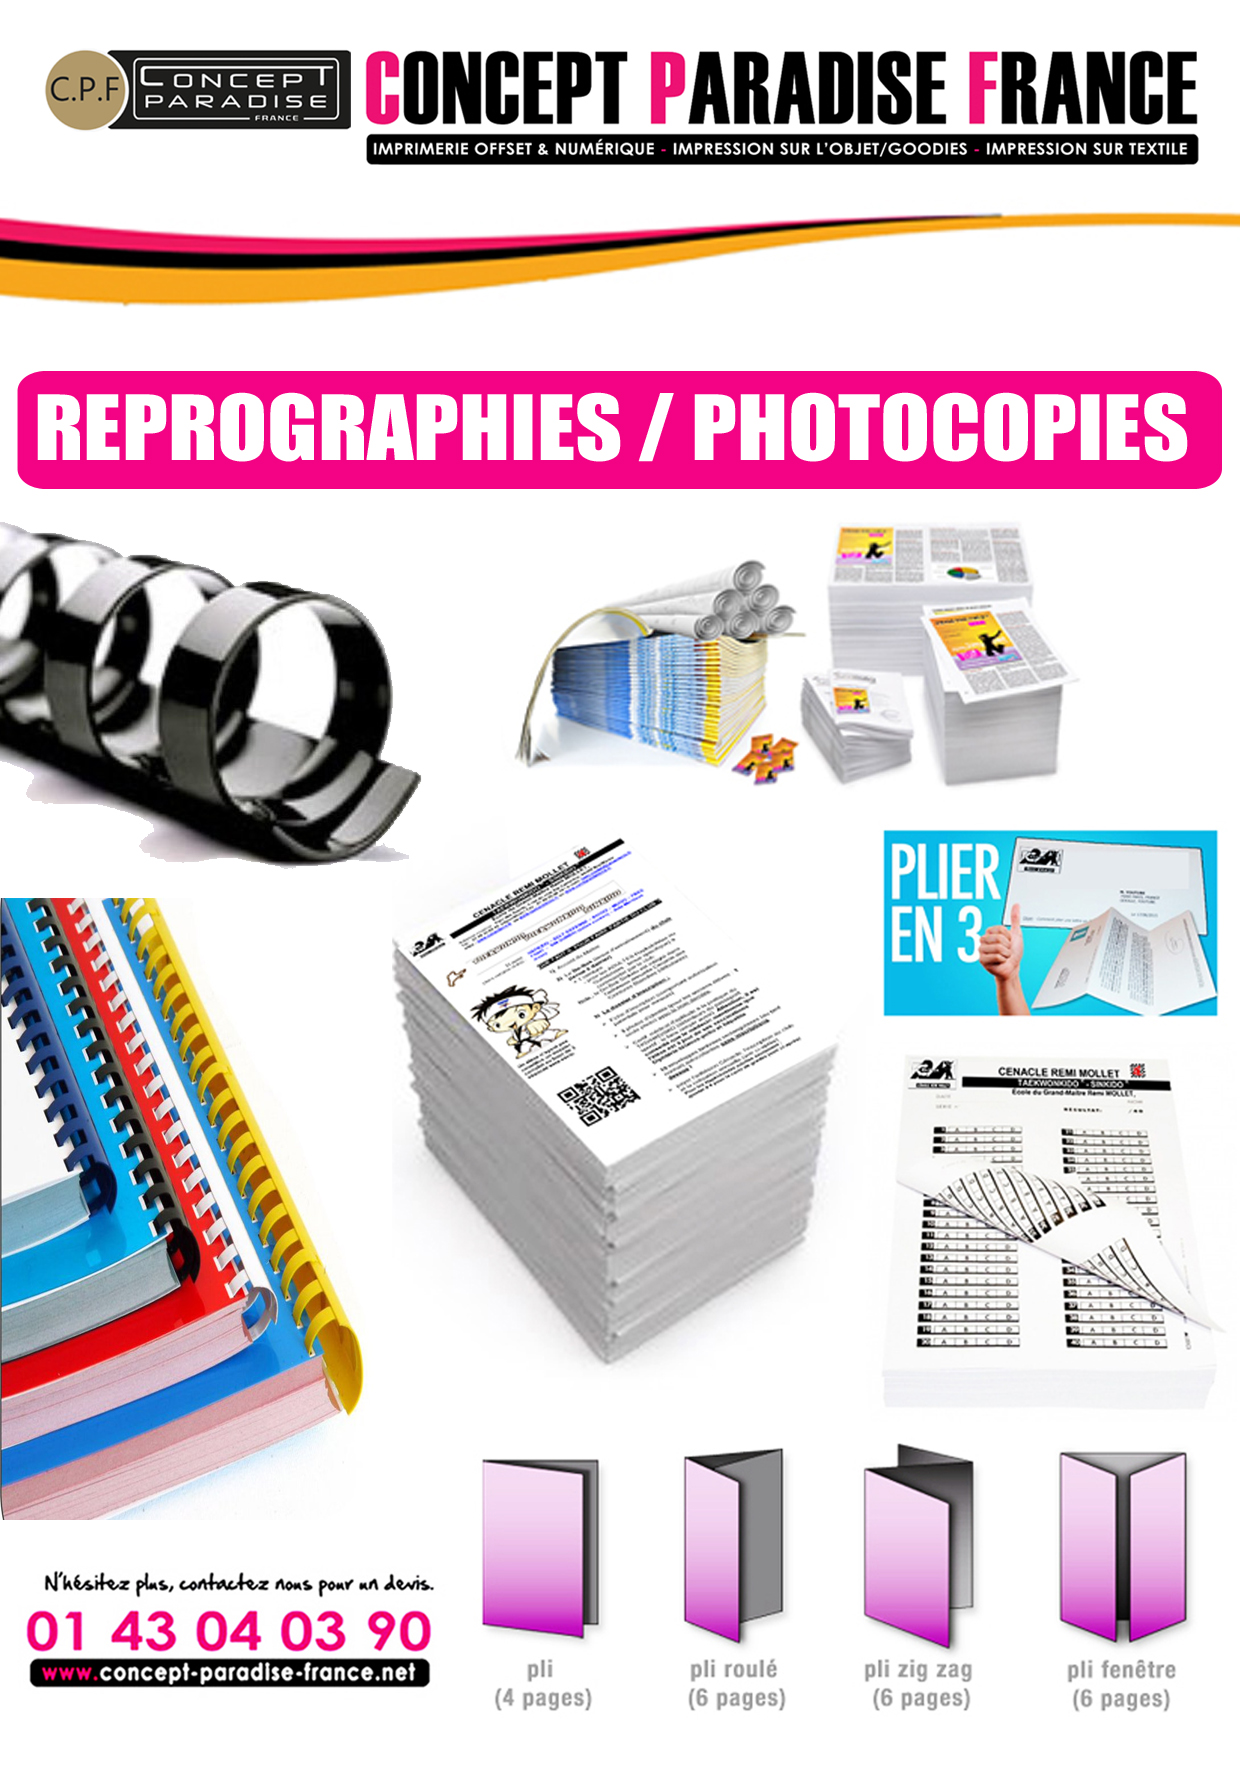 Reprographies / Photocopies